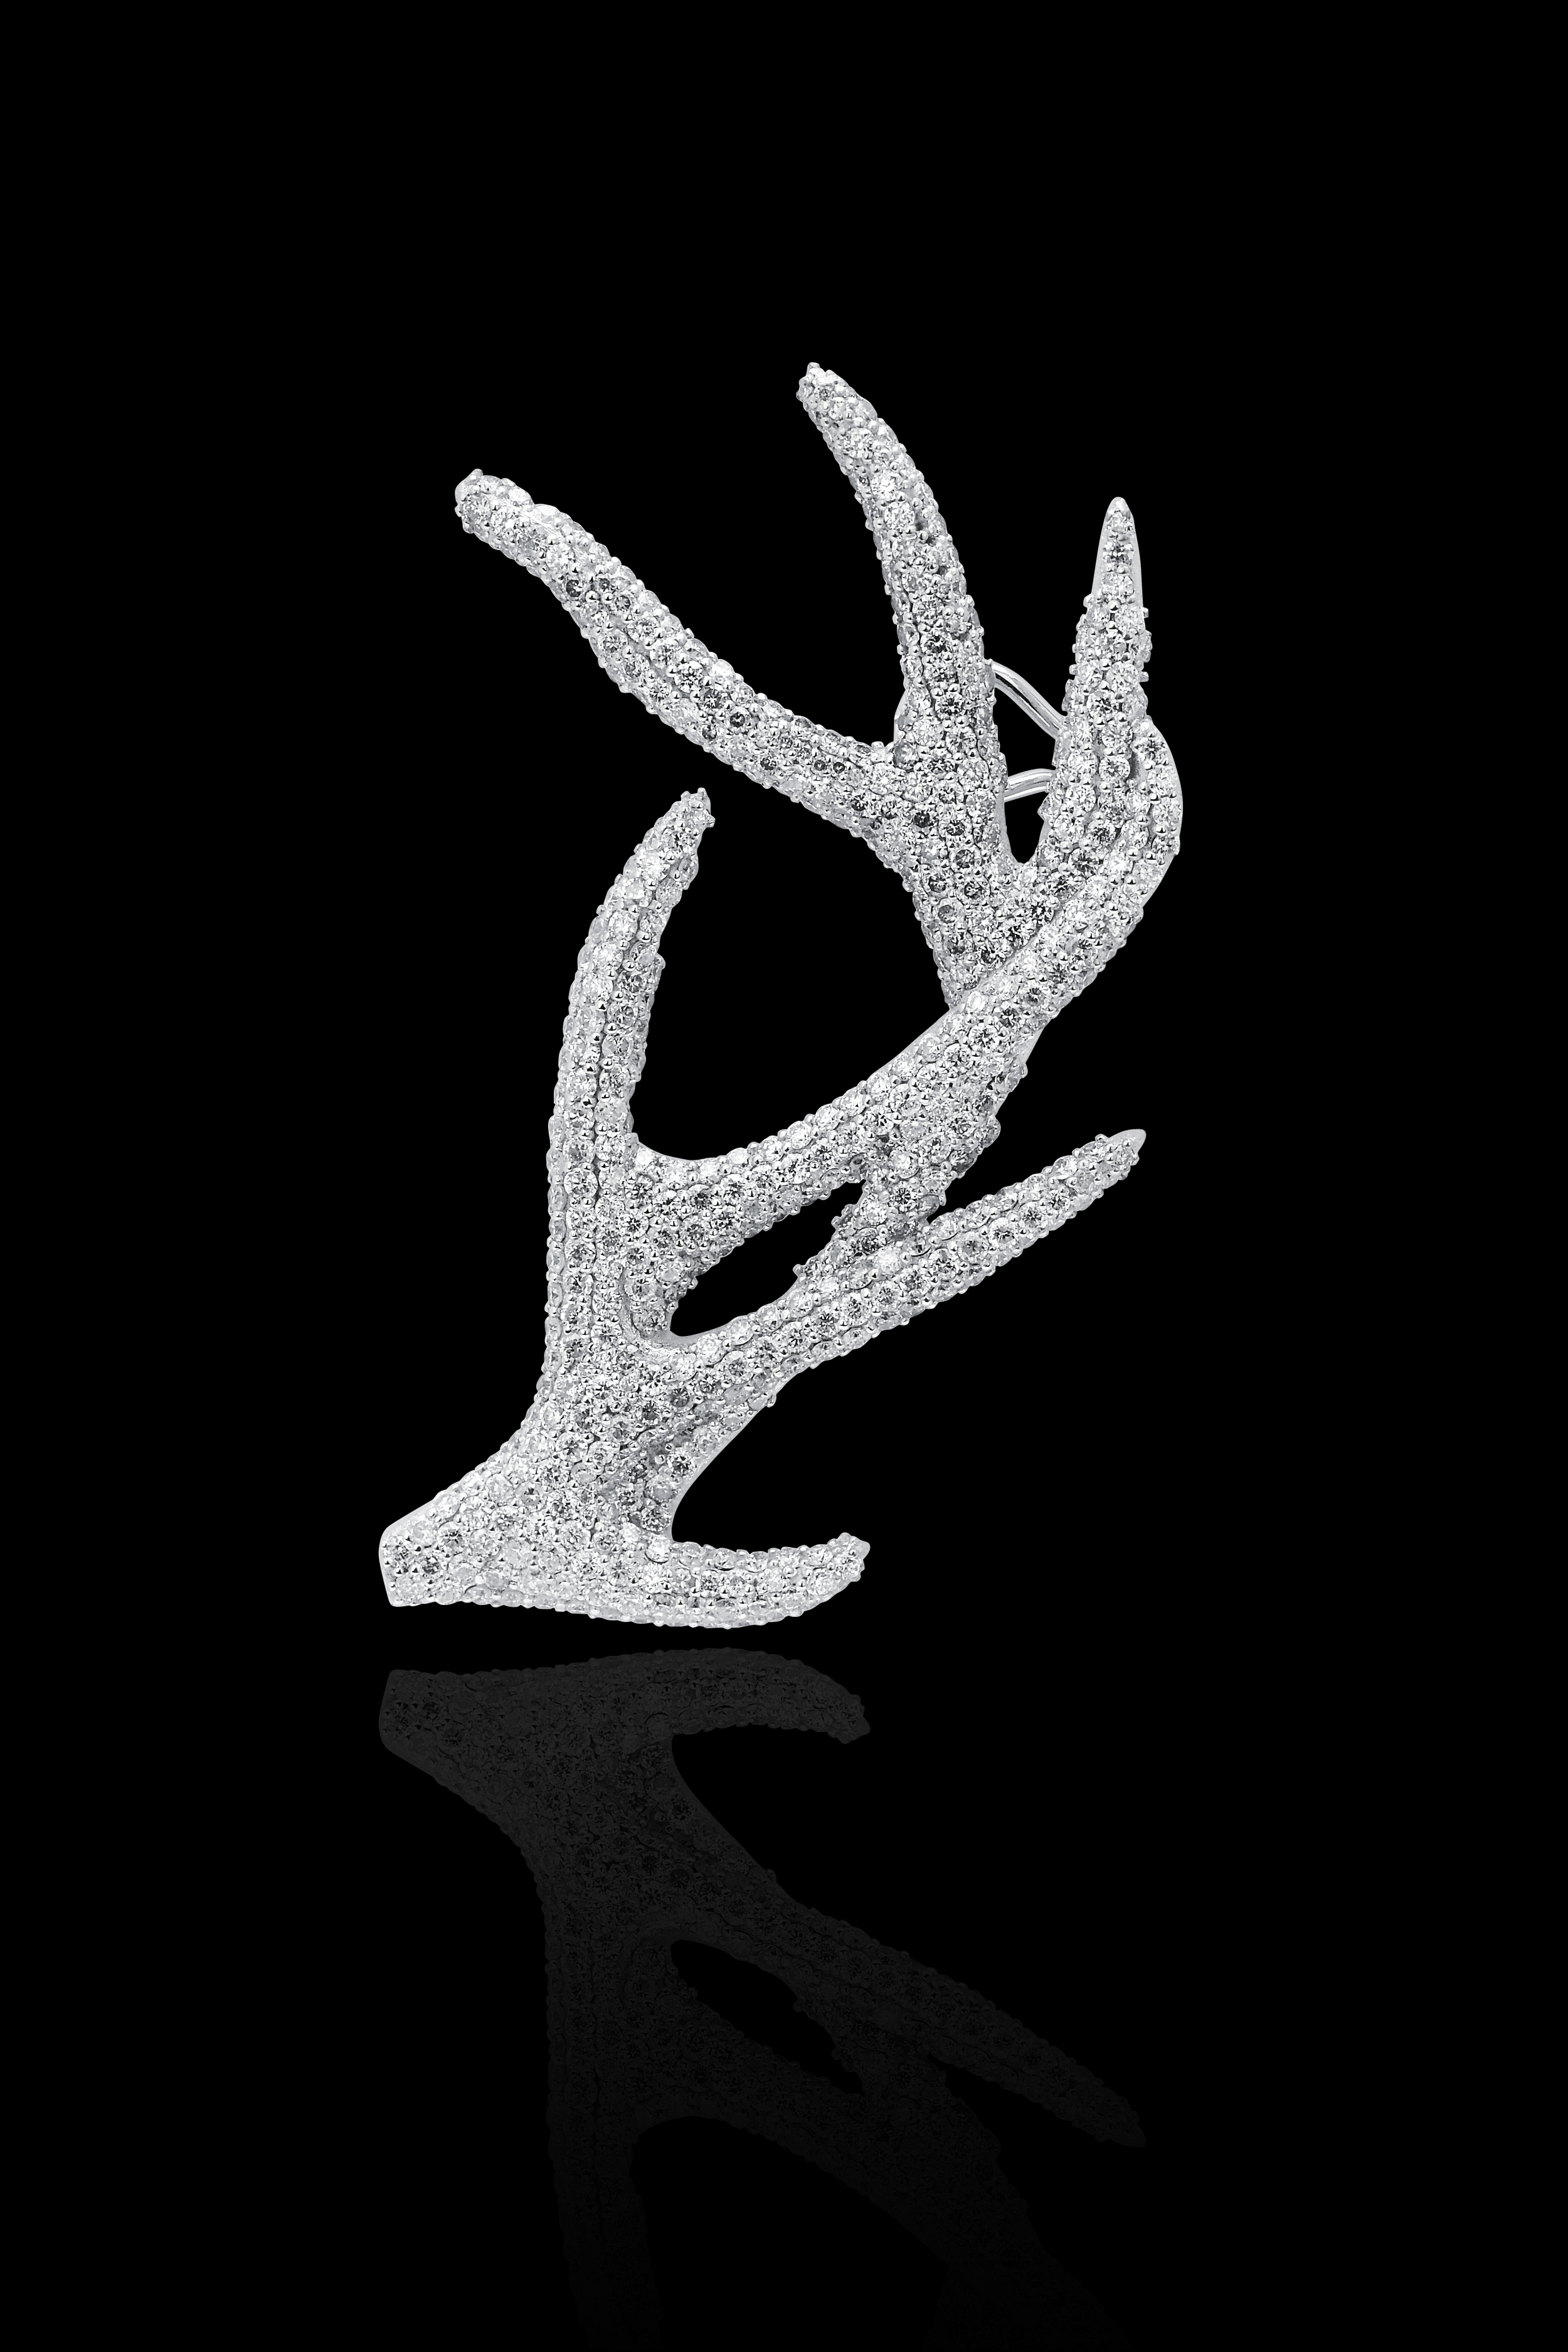 From her new Desire collection, a diamond and white gold ear cuff.